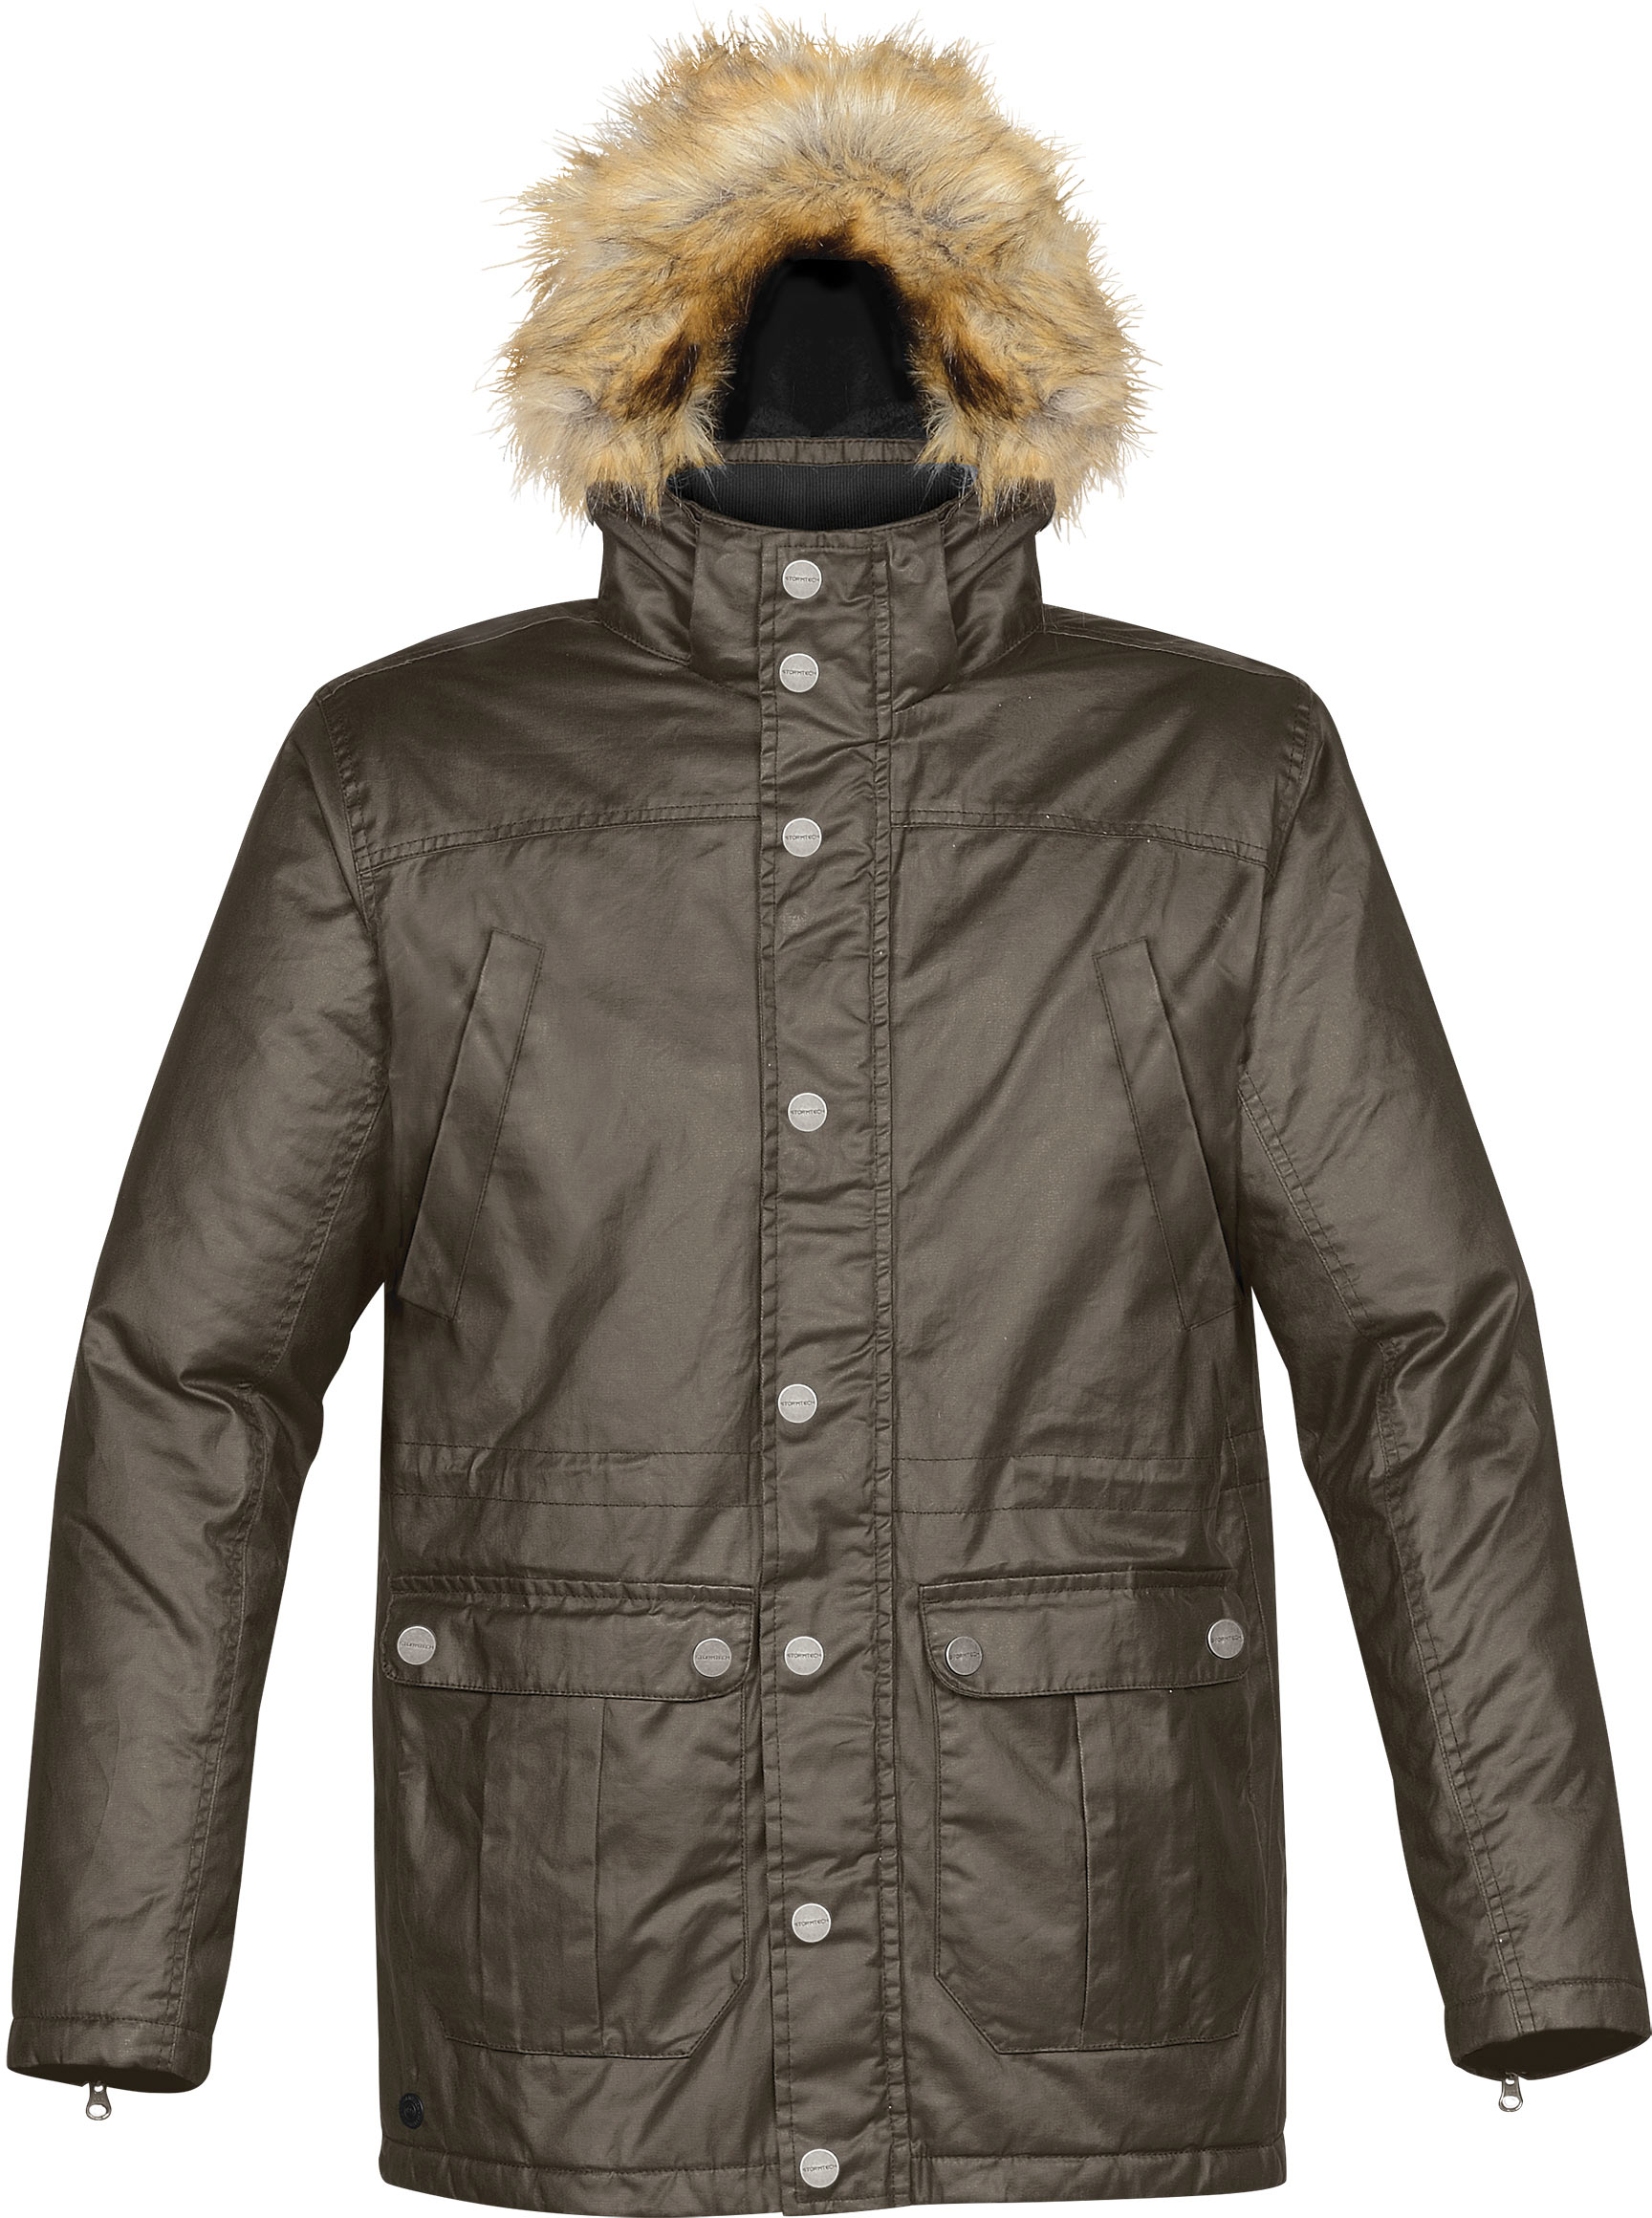 Picture of STORMTECH Men's Balmoral Field Parka